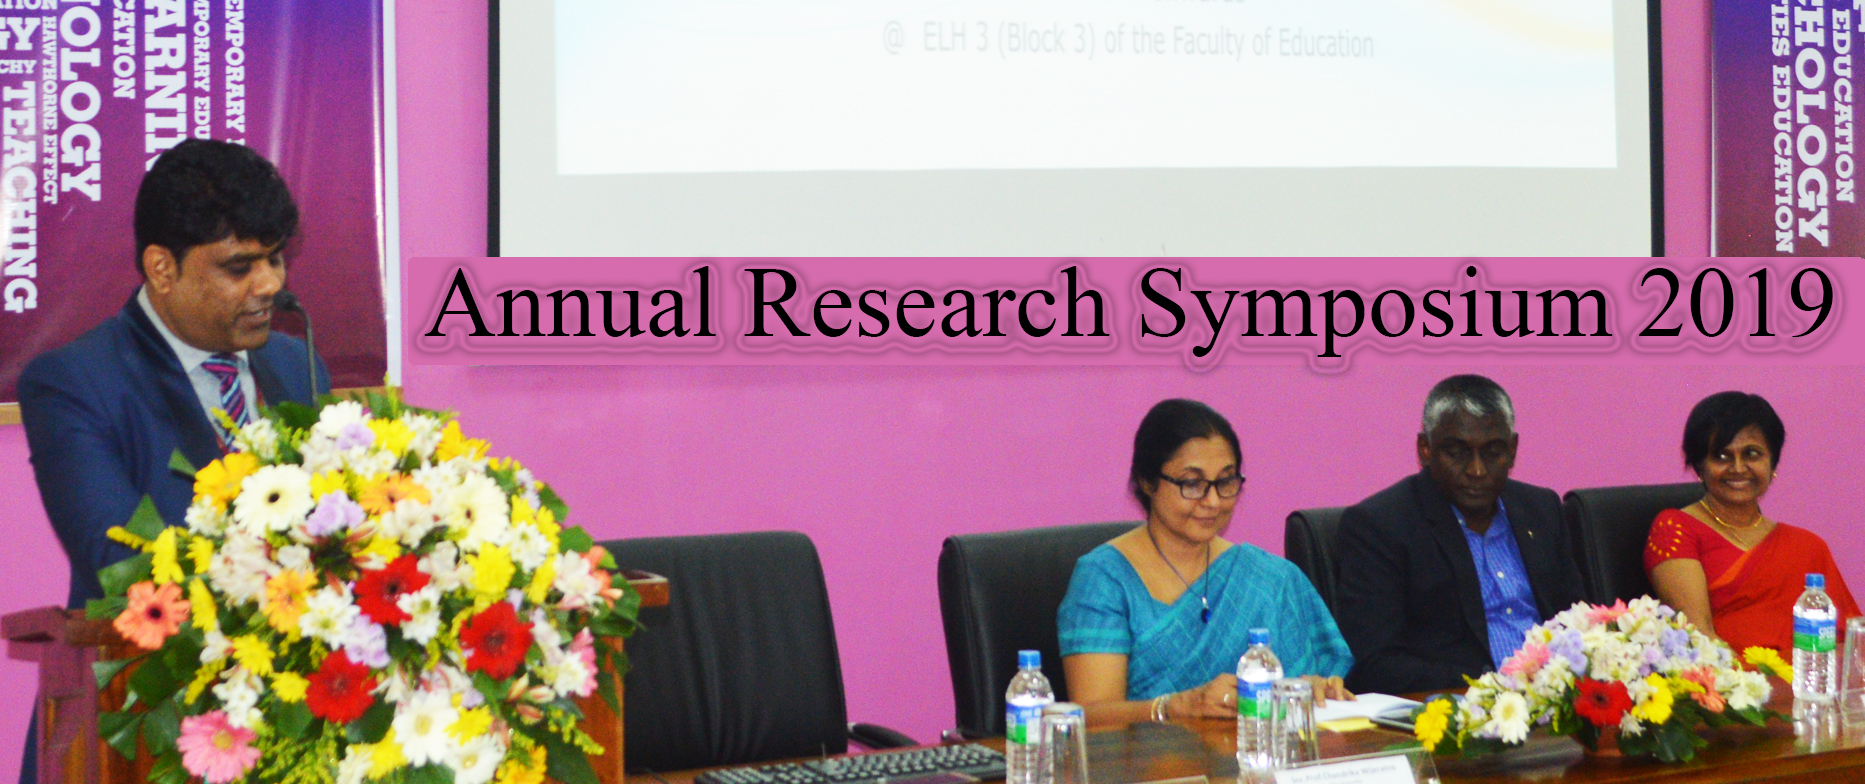 Annual Research Symposium 2019